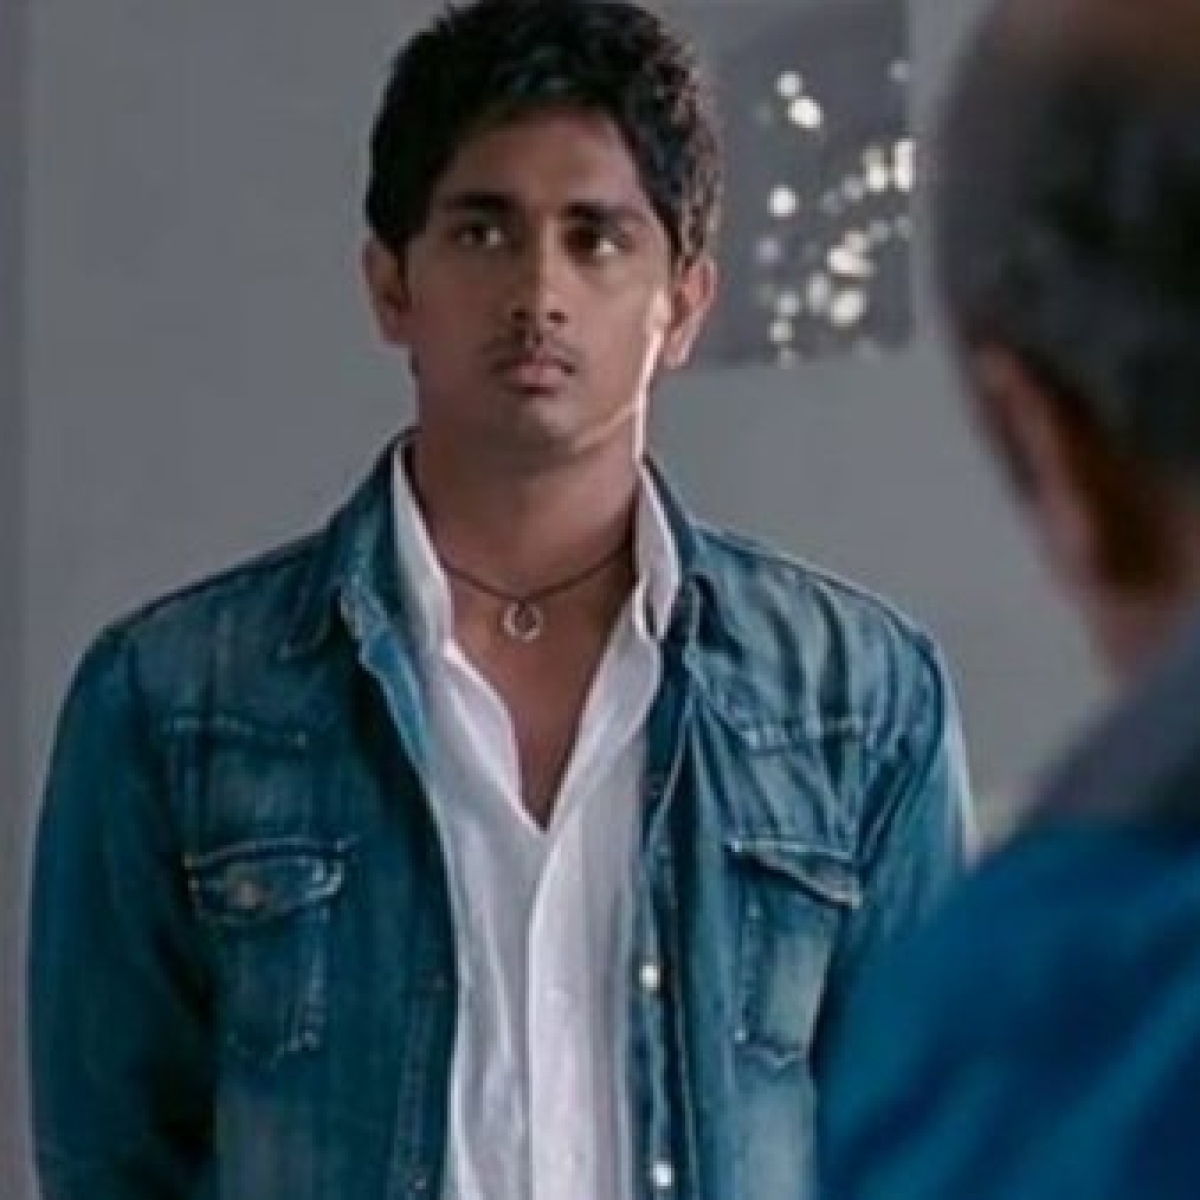 'Rang De Basanti' actor Siddharth takes a subtle dig at Anupam Kher for 'Aayega toh Modi hi' tweet